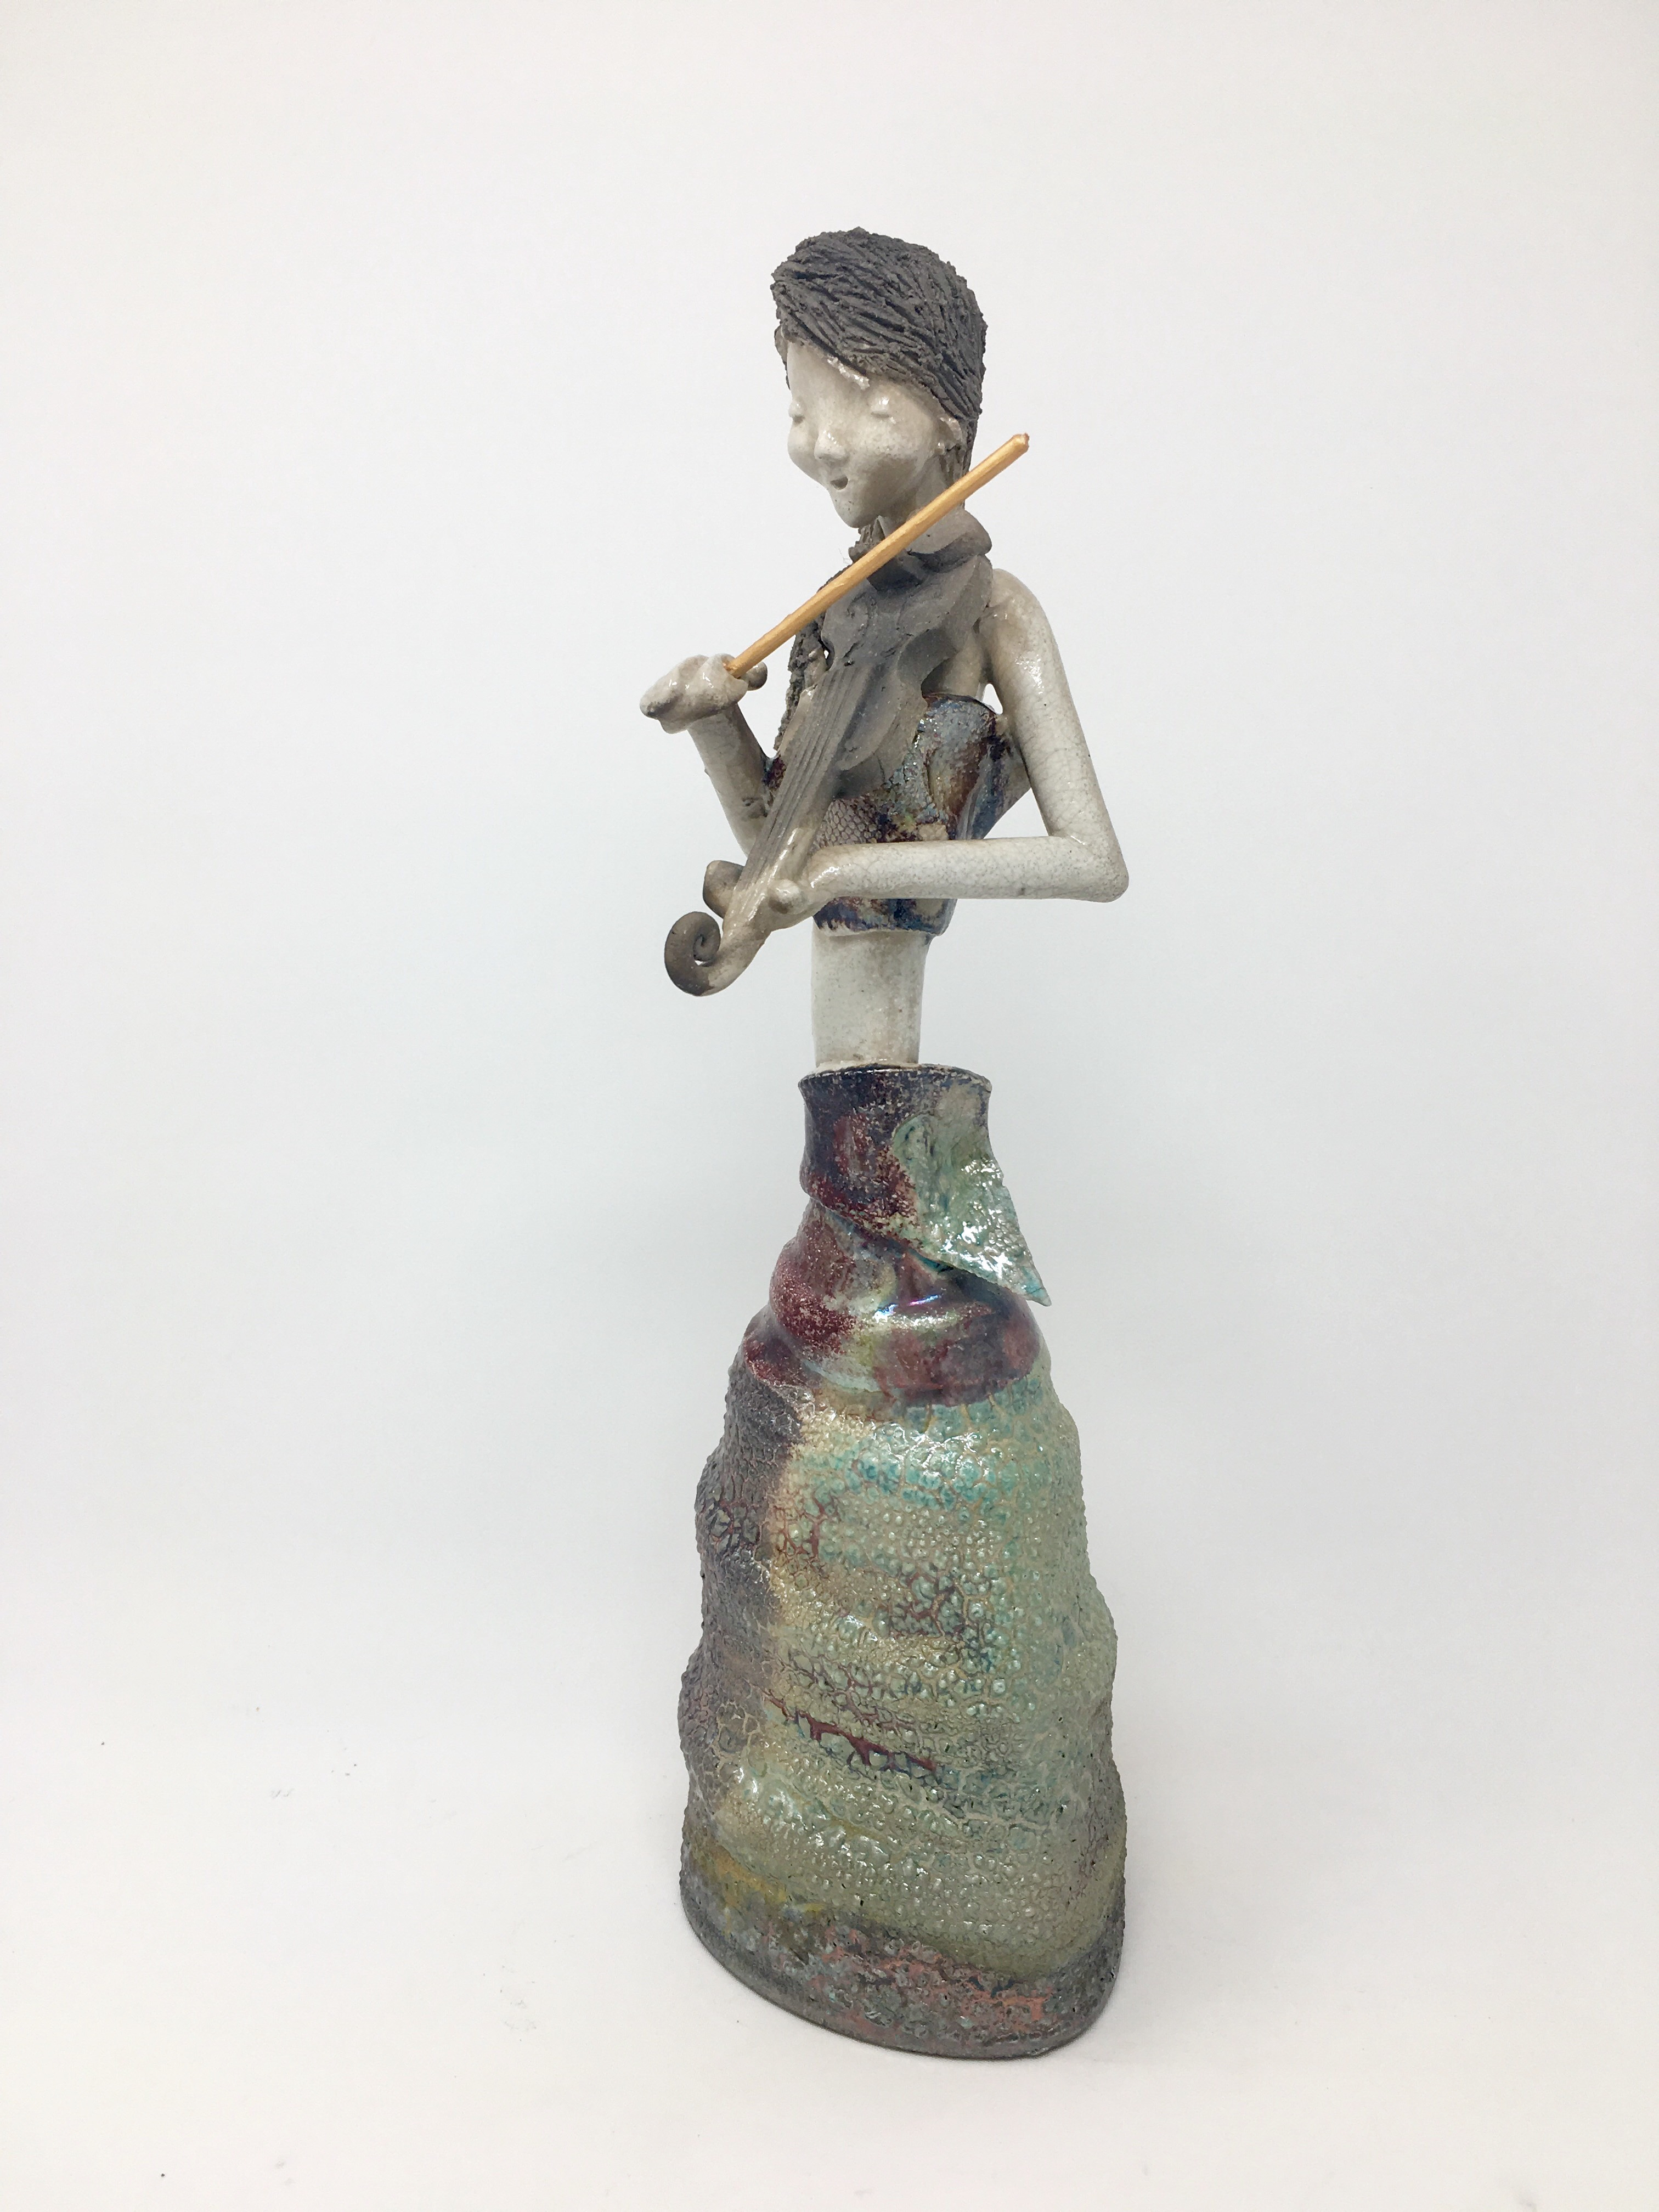 Fiddler of Dooney, ceramics, £95